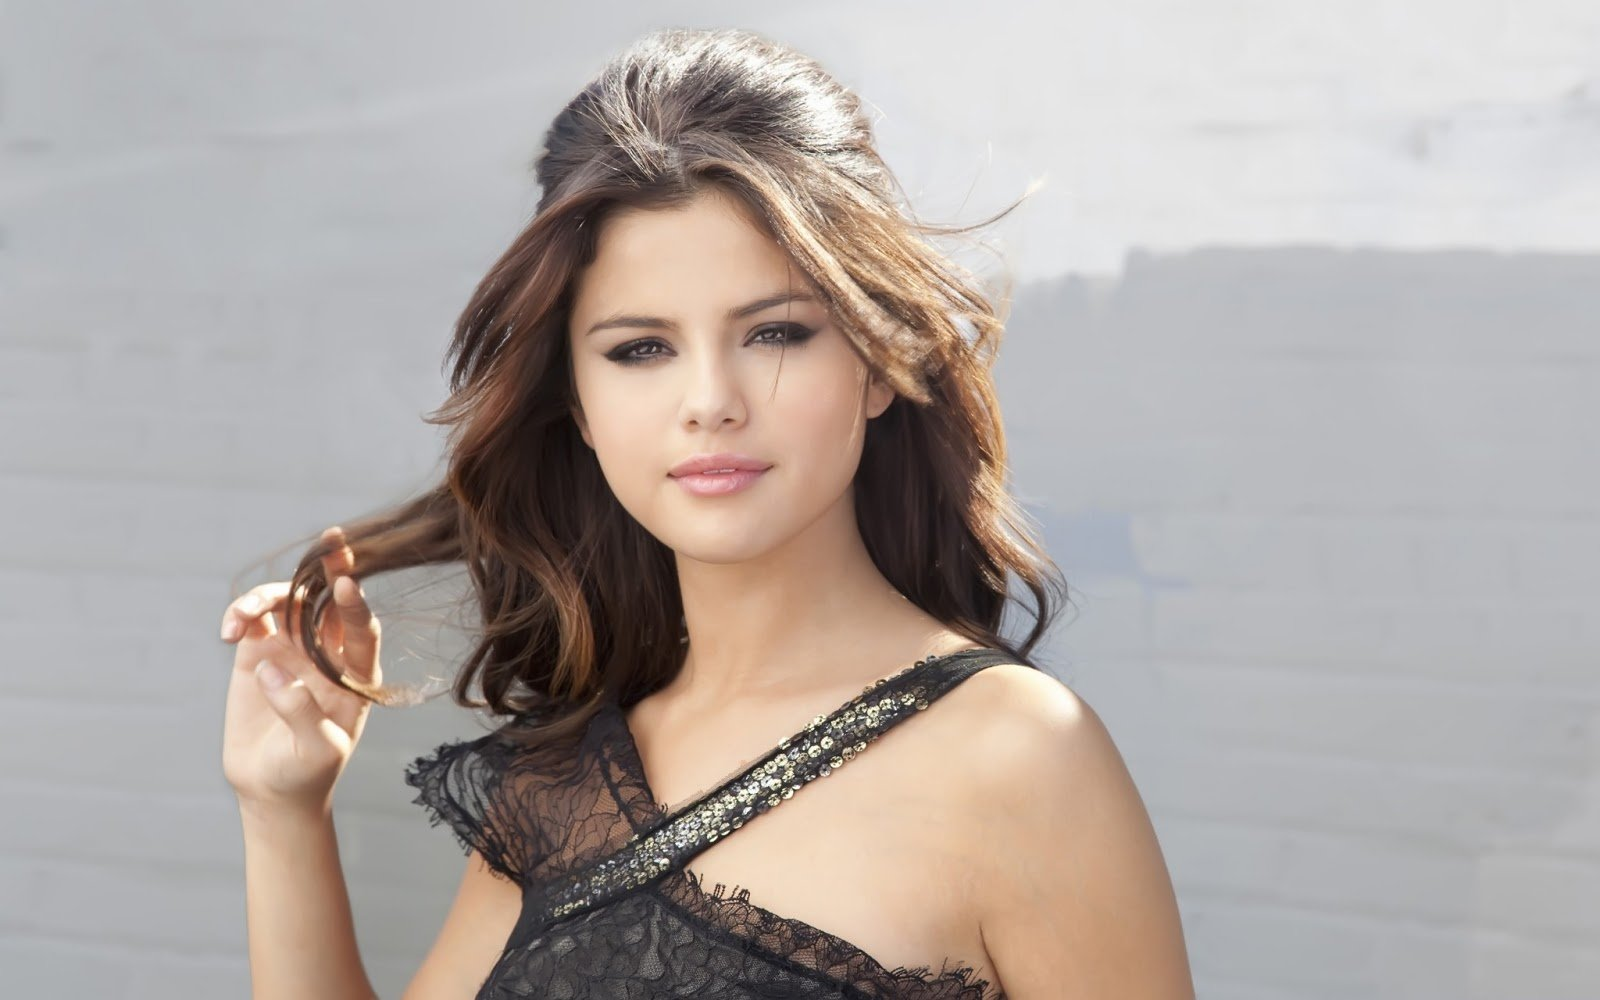 Lovely Wallpapers Selena Gomez Cute Wallpapers 2013 1600x1000